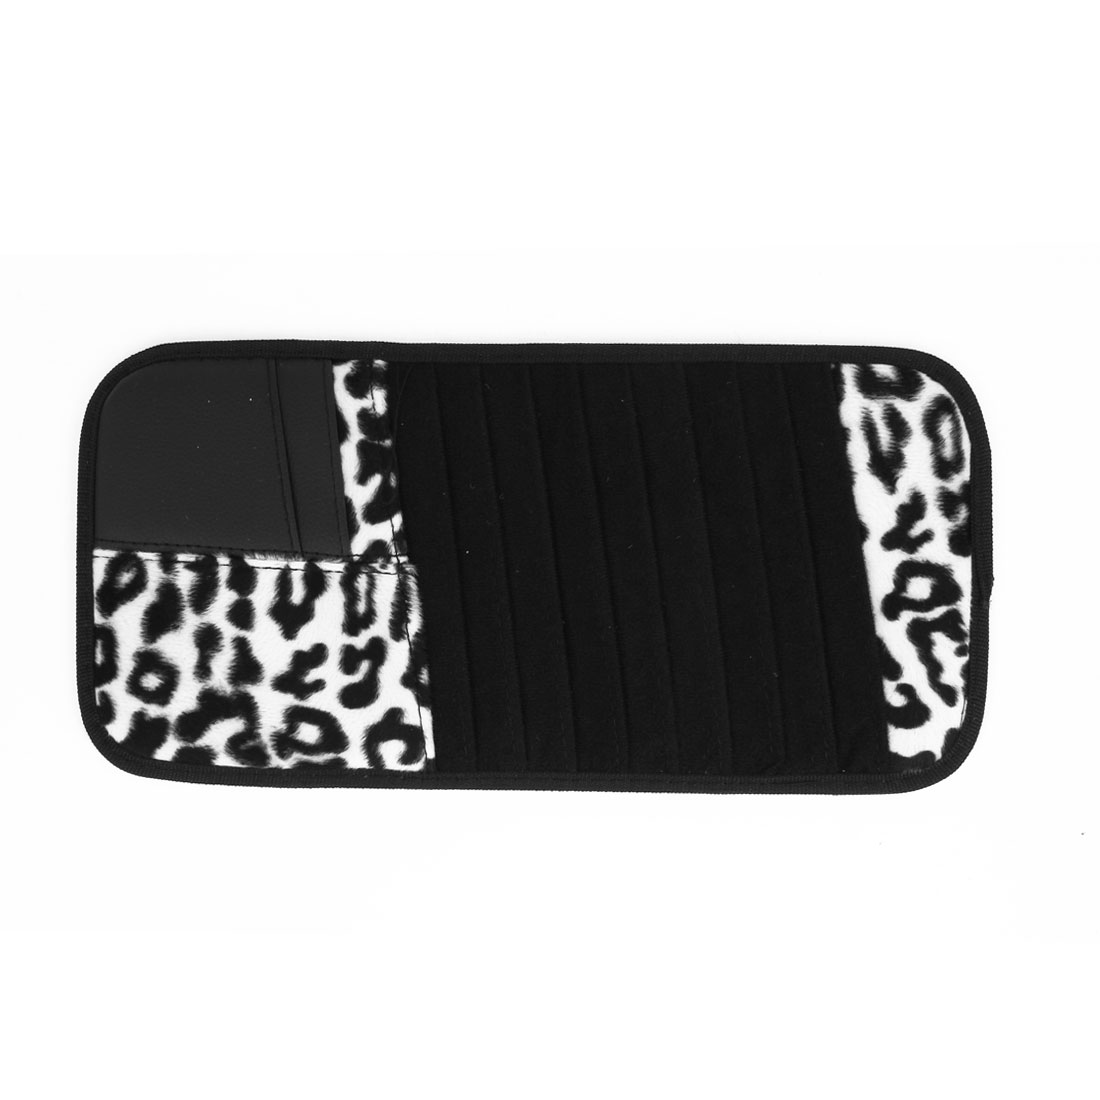 Car Leopard Print Faux Leather Fleece Sun Visor 8pcs CD Card Storage Bag Black White